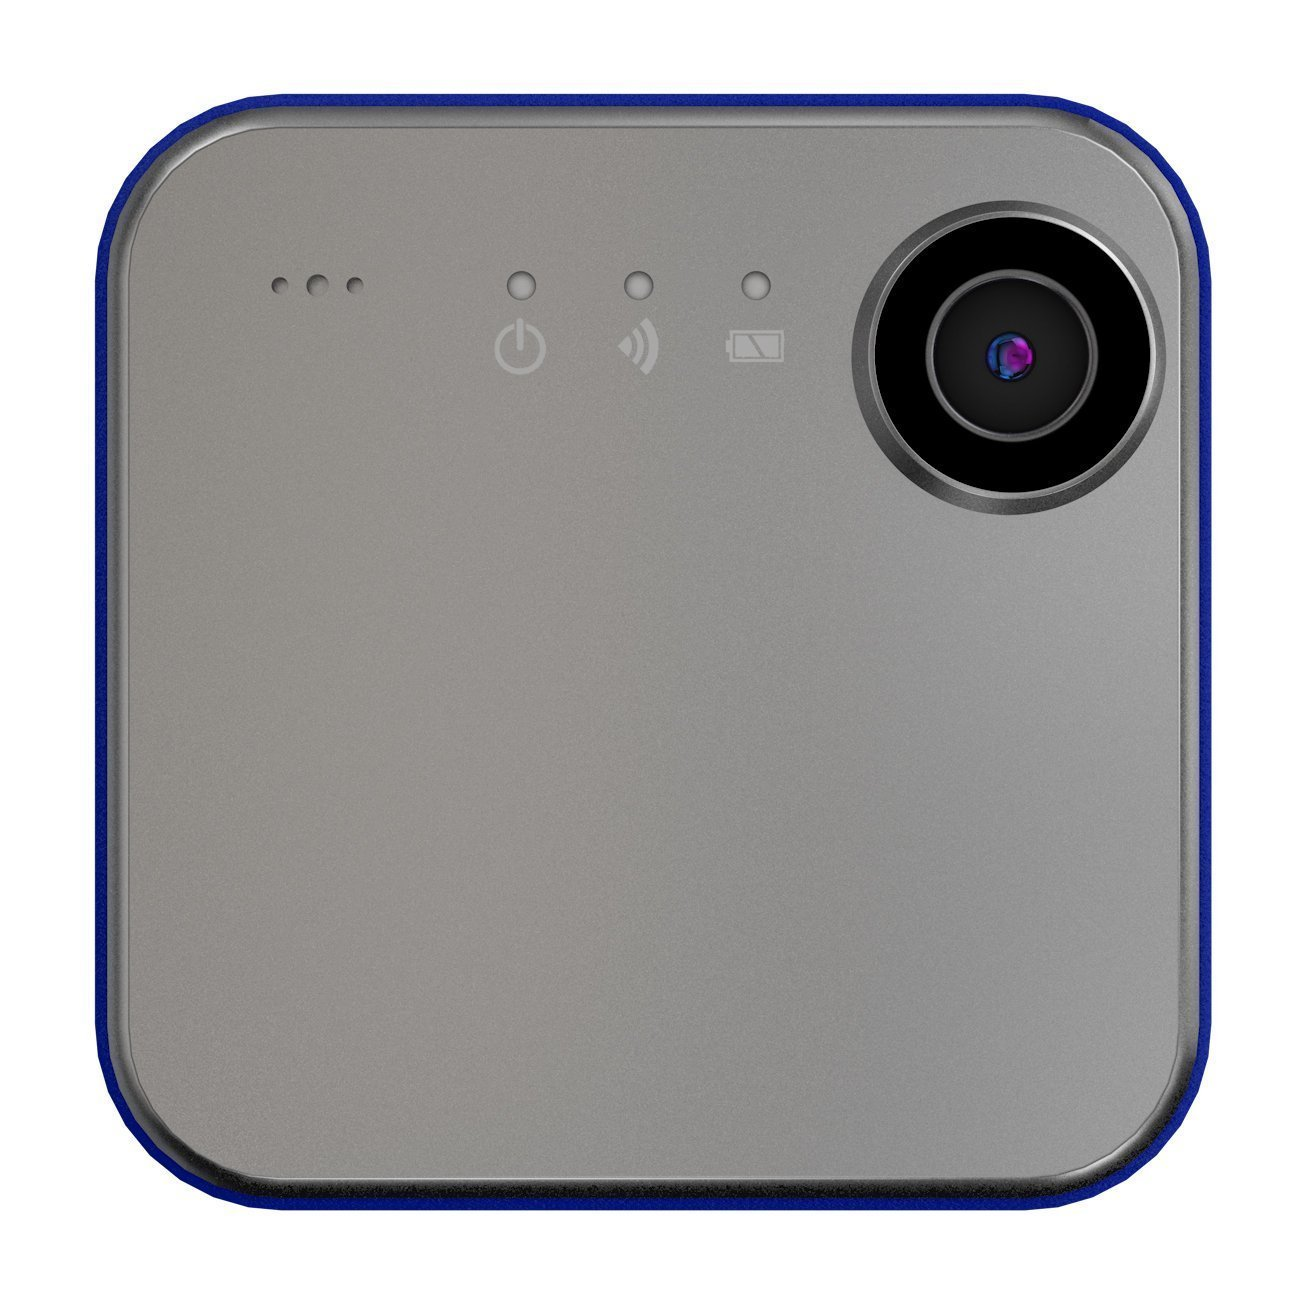 iON Camera SnapCam Wearable HD Camera with Wi-Fi and Bluetooth (Silver) 1050